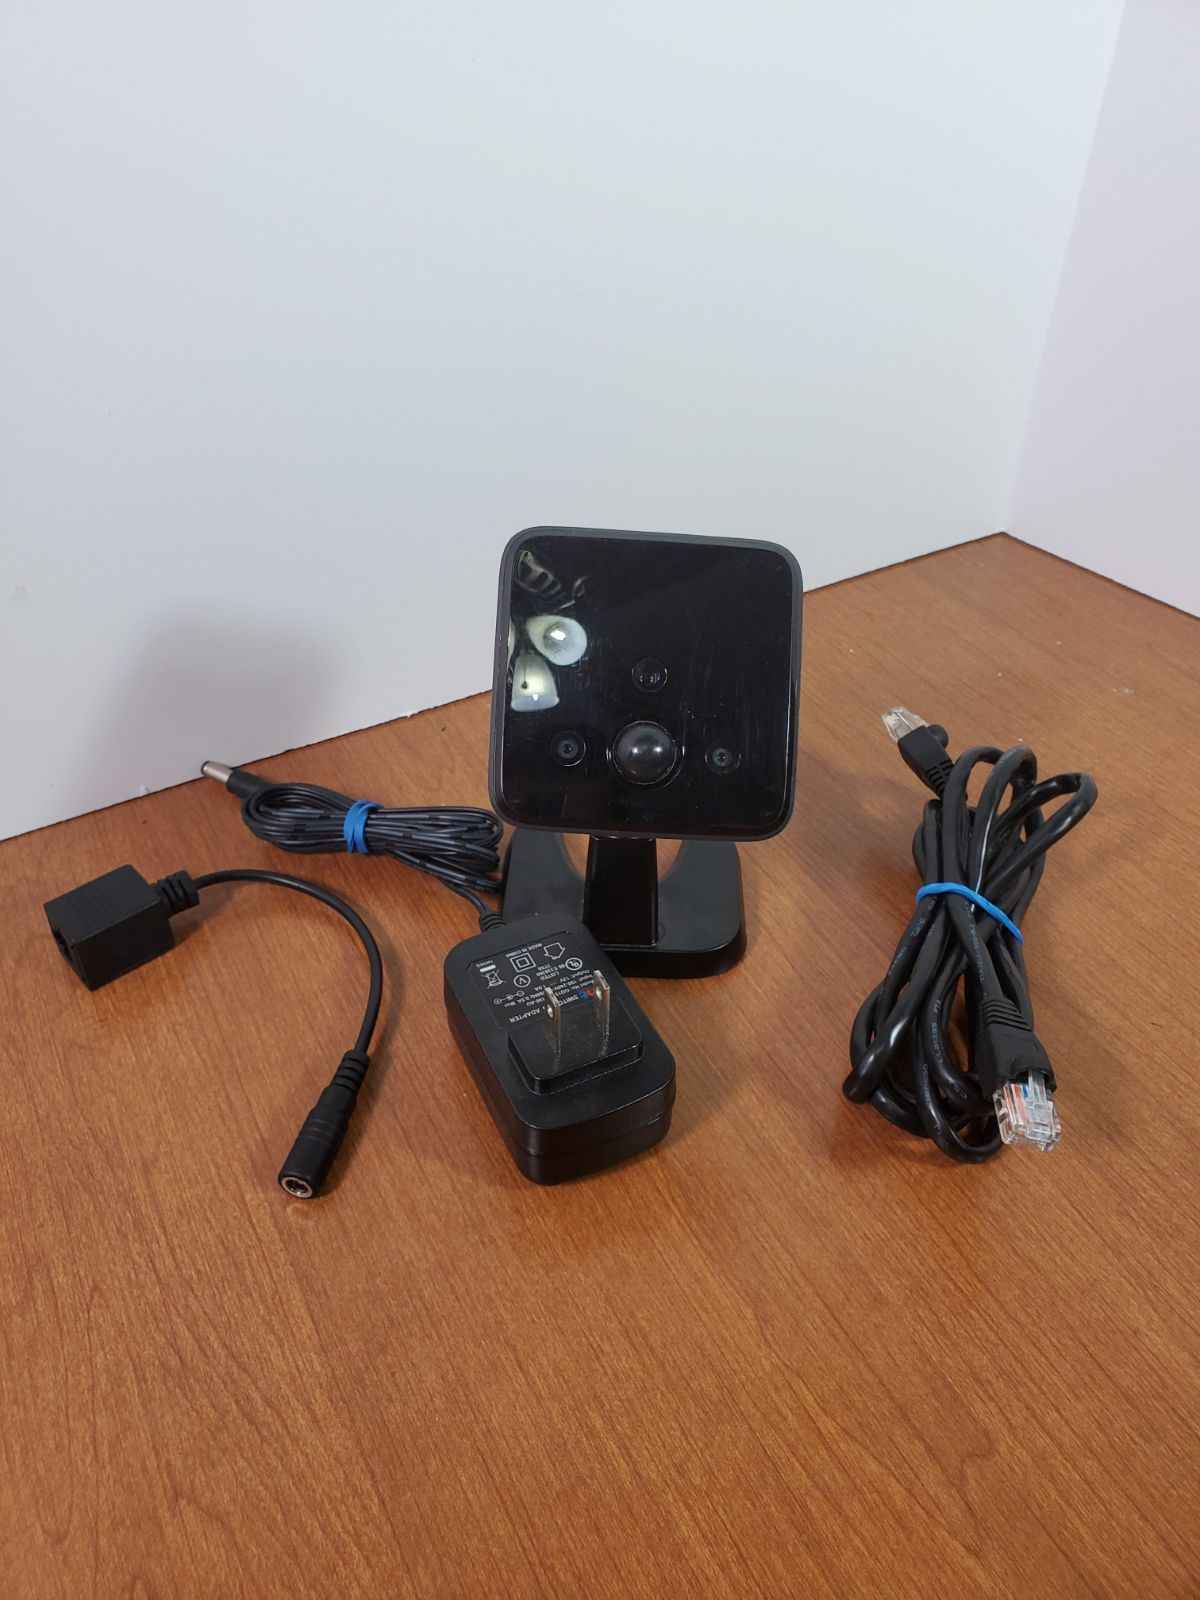 iCamera-1000 Wireless Home Security